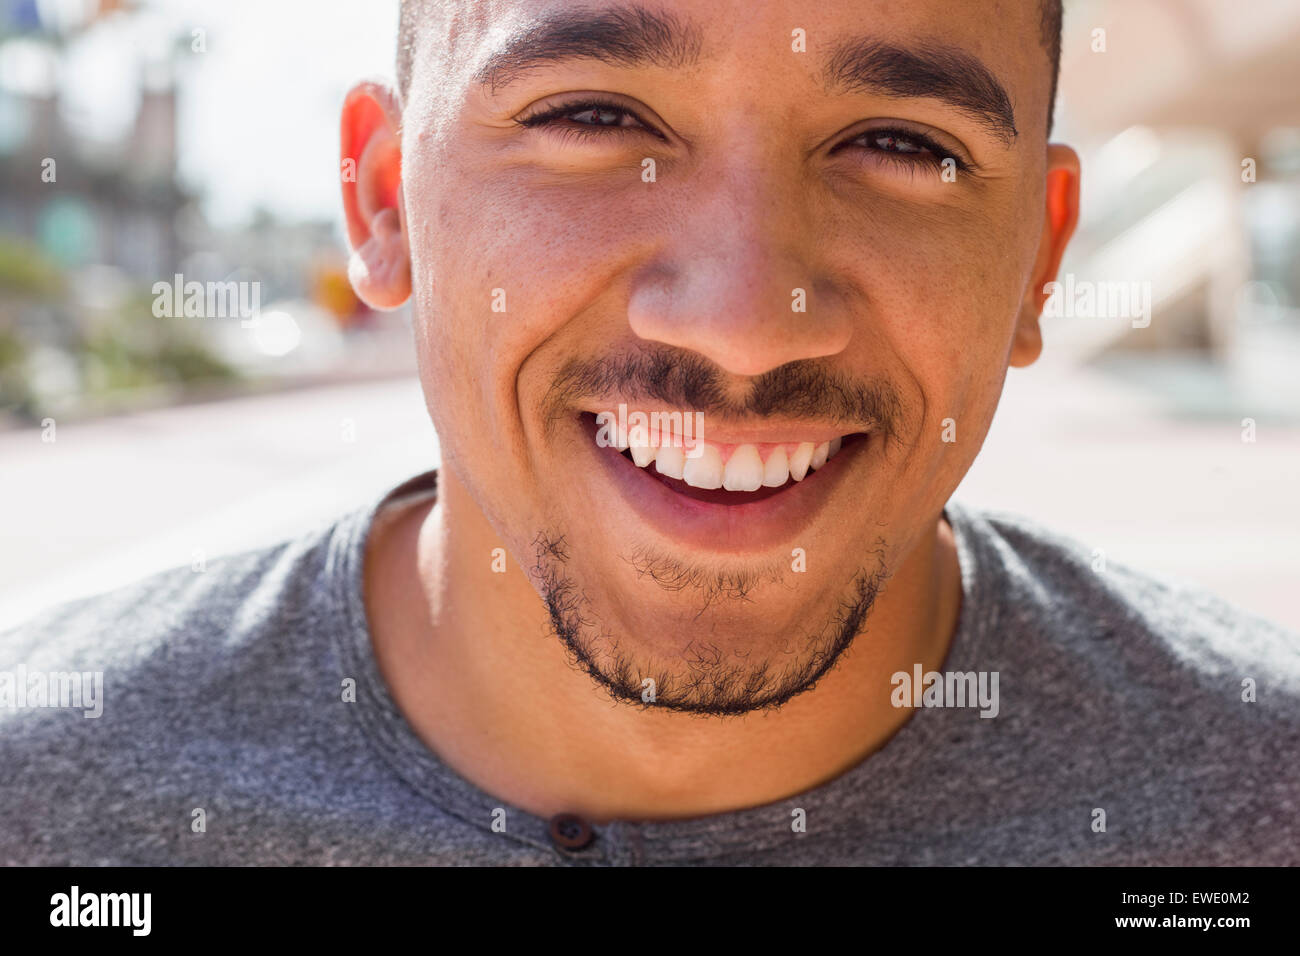 Smiling young man face stubble confident happy African American black - Stock Image